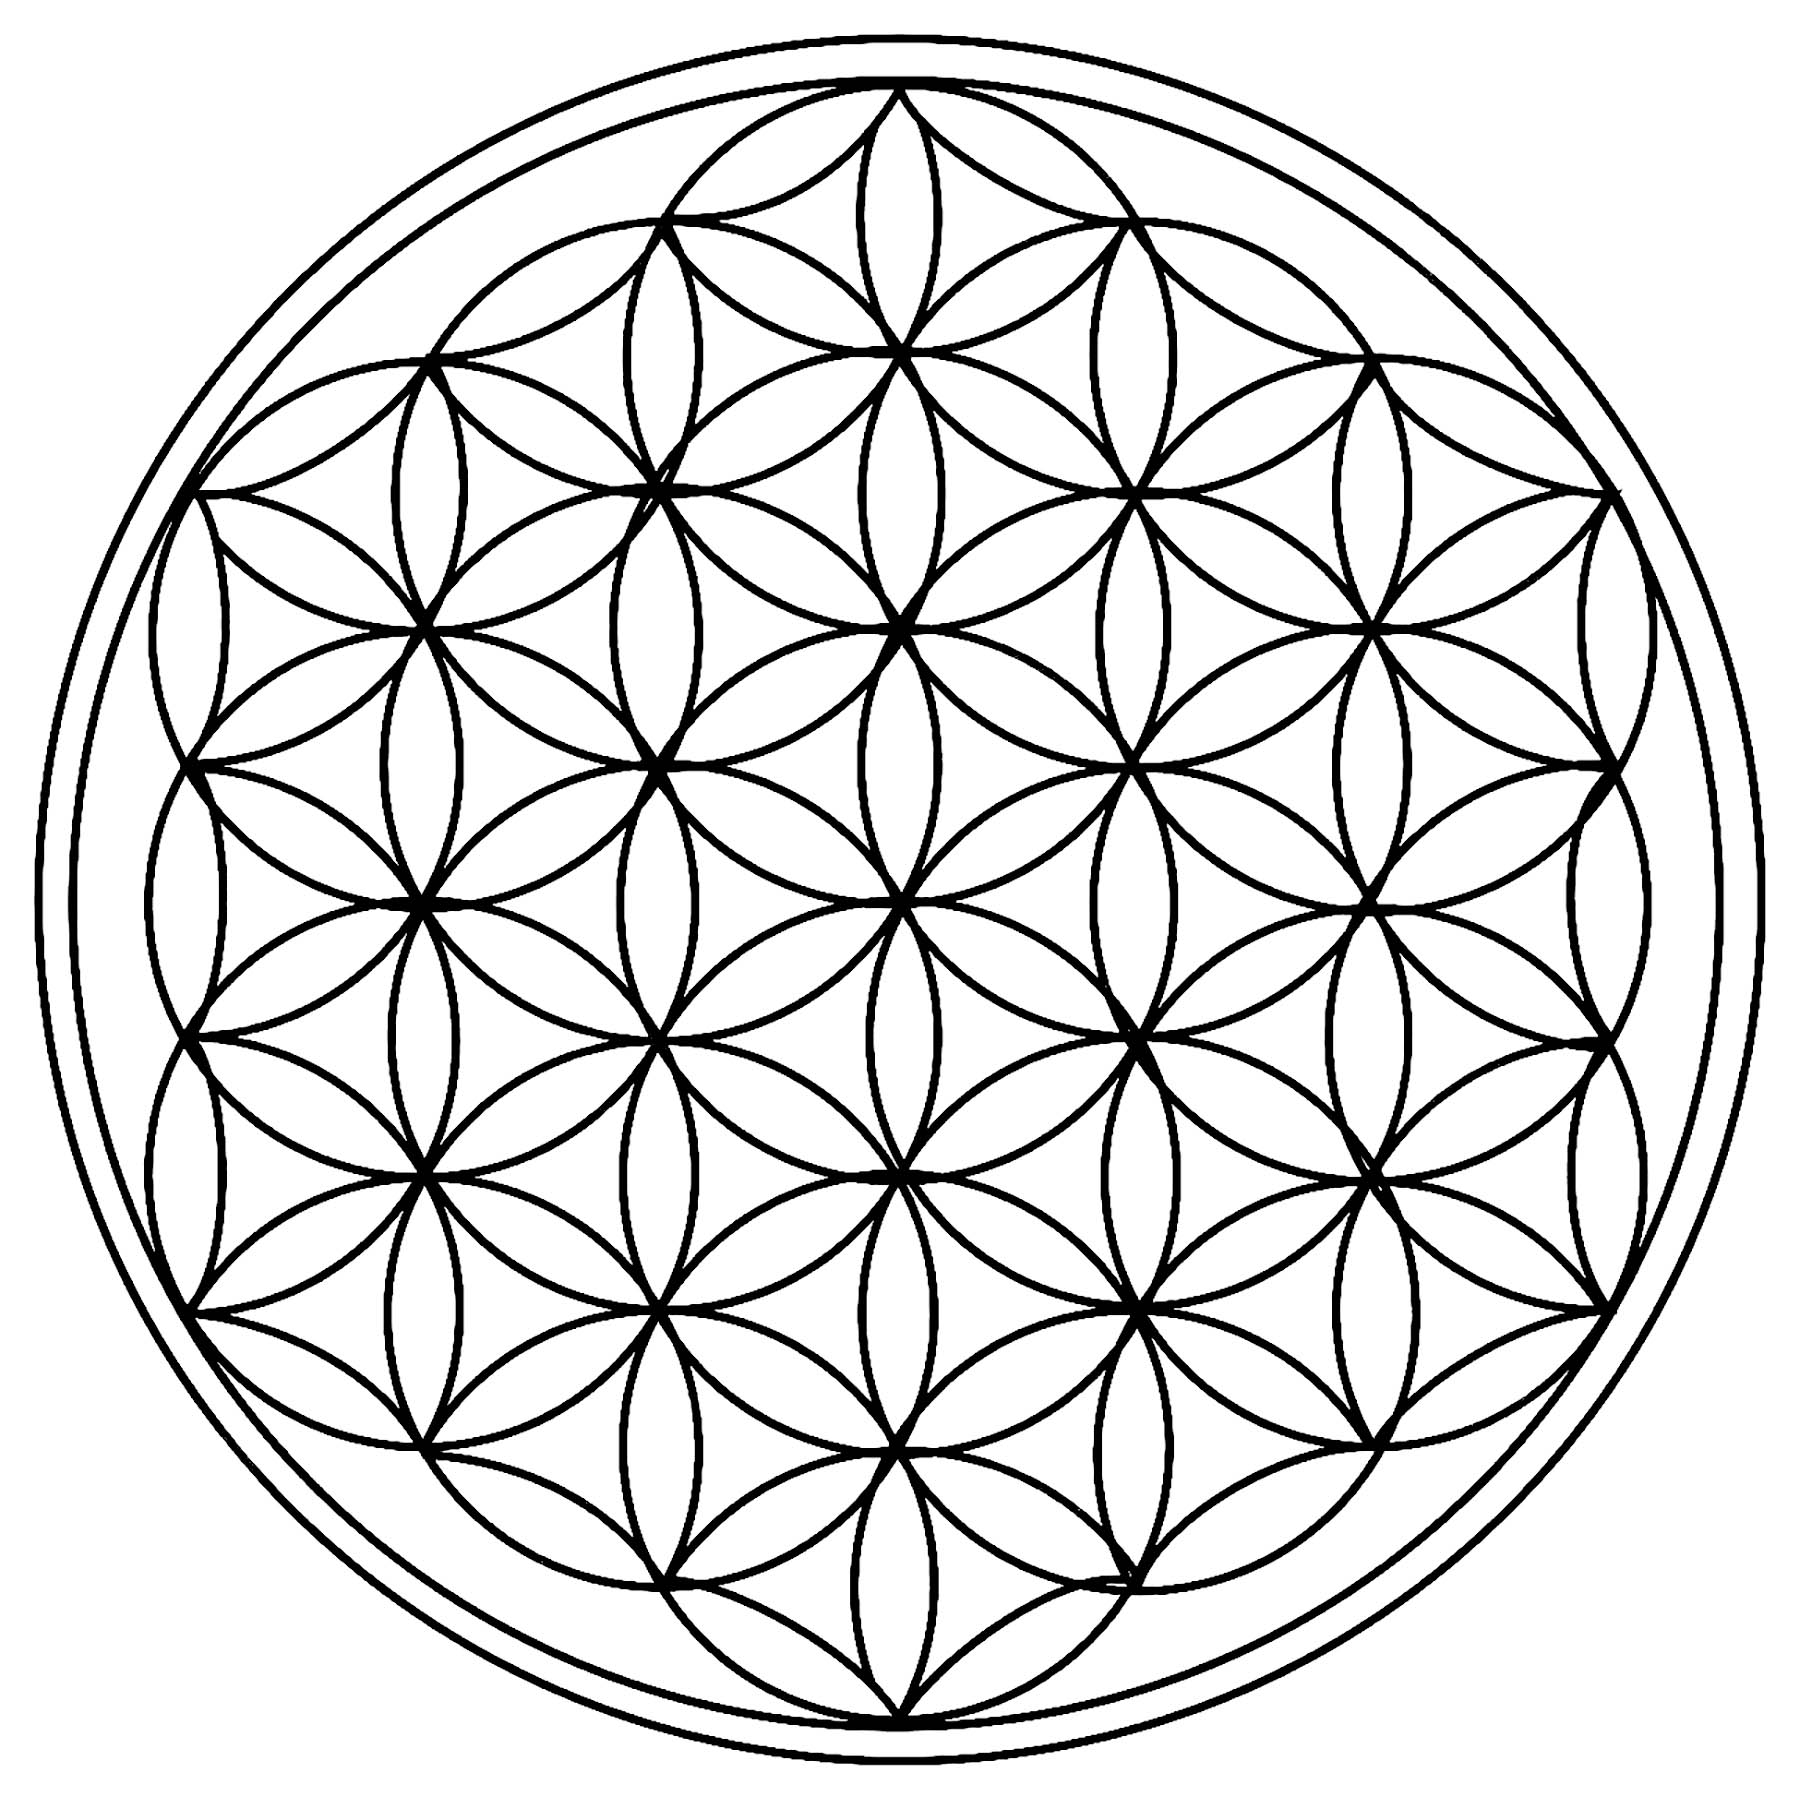 Circles forming a cool Mandala. Details relatively simple to color, for a Mandala coloring page very unique and of high quality.